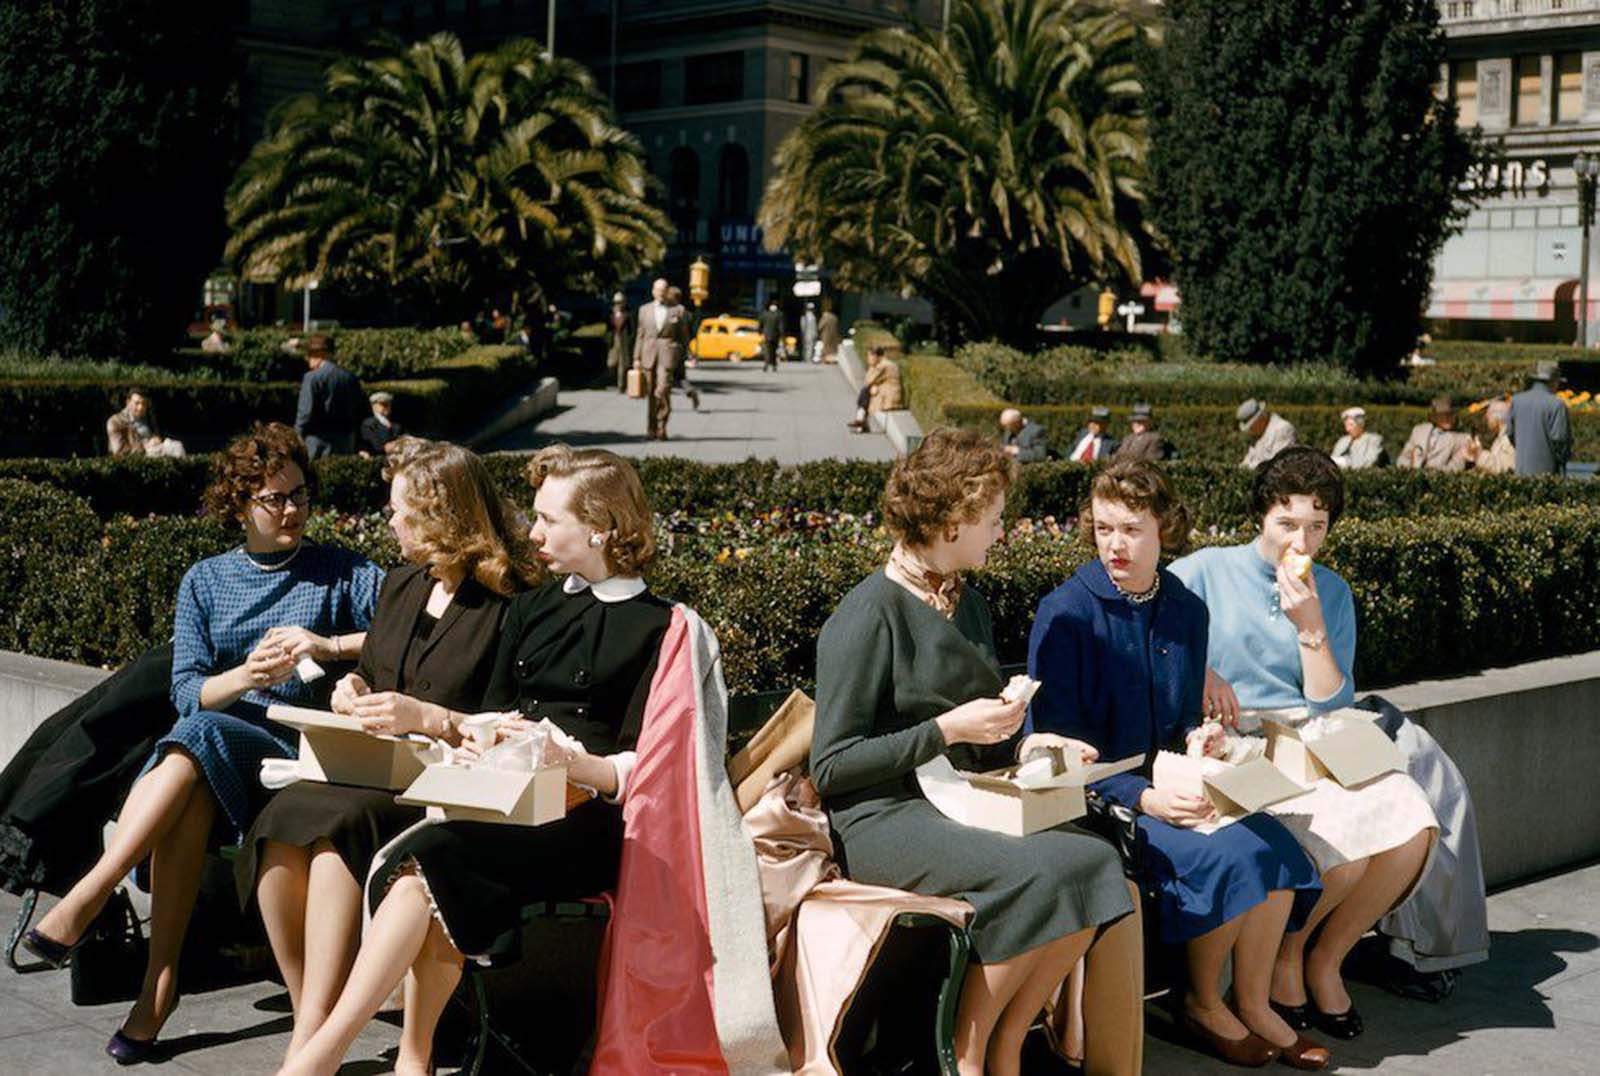 Women office workers eat boxed lunches in Union Square, San Francisco, California. Their suits are formal, in conservative colours. Their hair is worn short, typically parted at the side. All the women appear to be wearing tan stockings or hose. 1956.